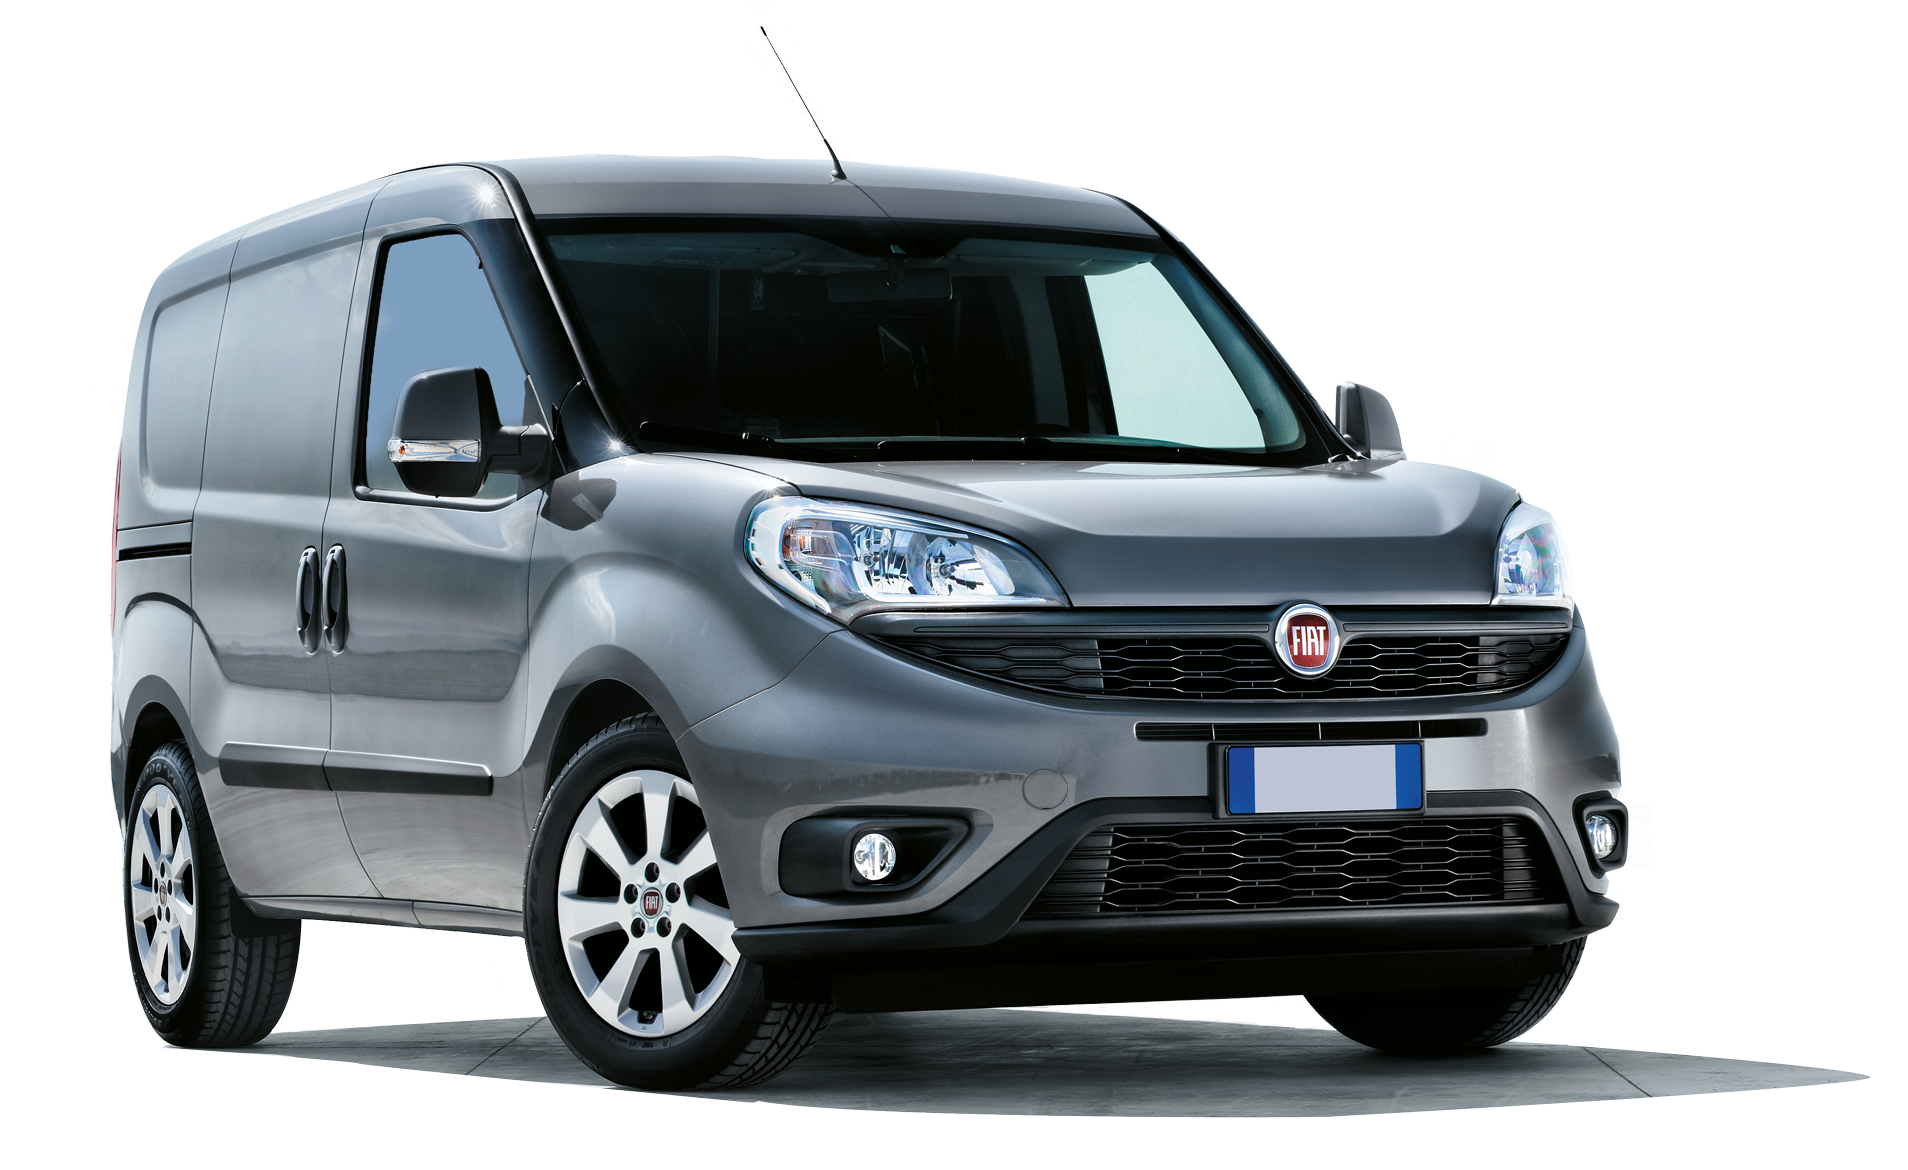 Fiat Doblo business van front view